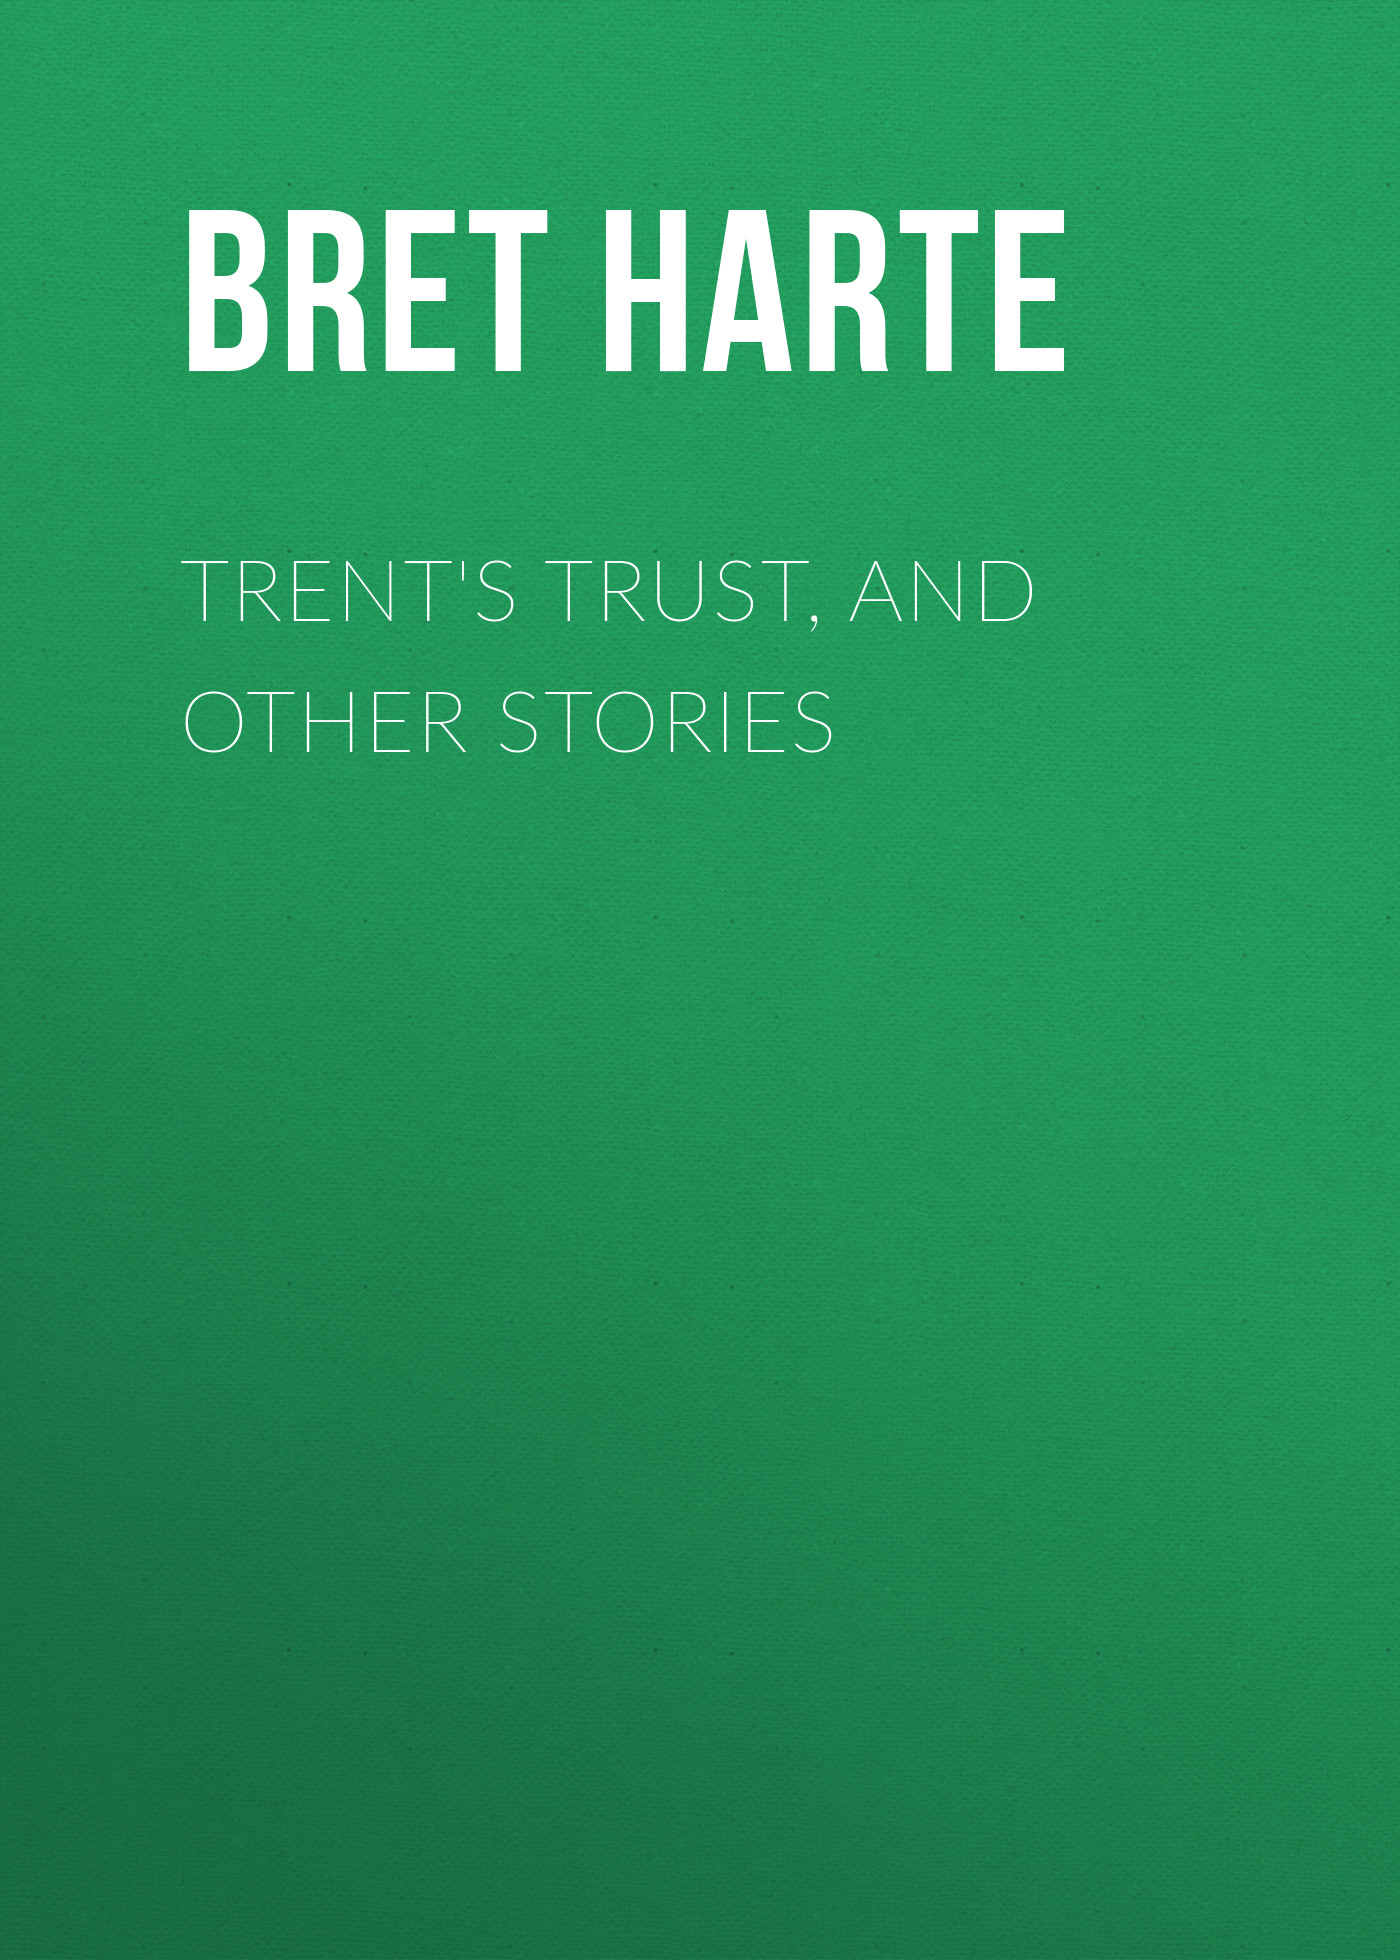 Bret Harte Trent's Trust, and Other Stories bret harte the luck of roaring camp heathen chinee poems and other sketches